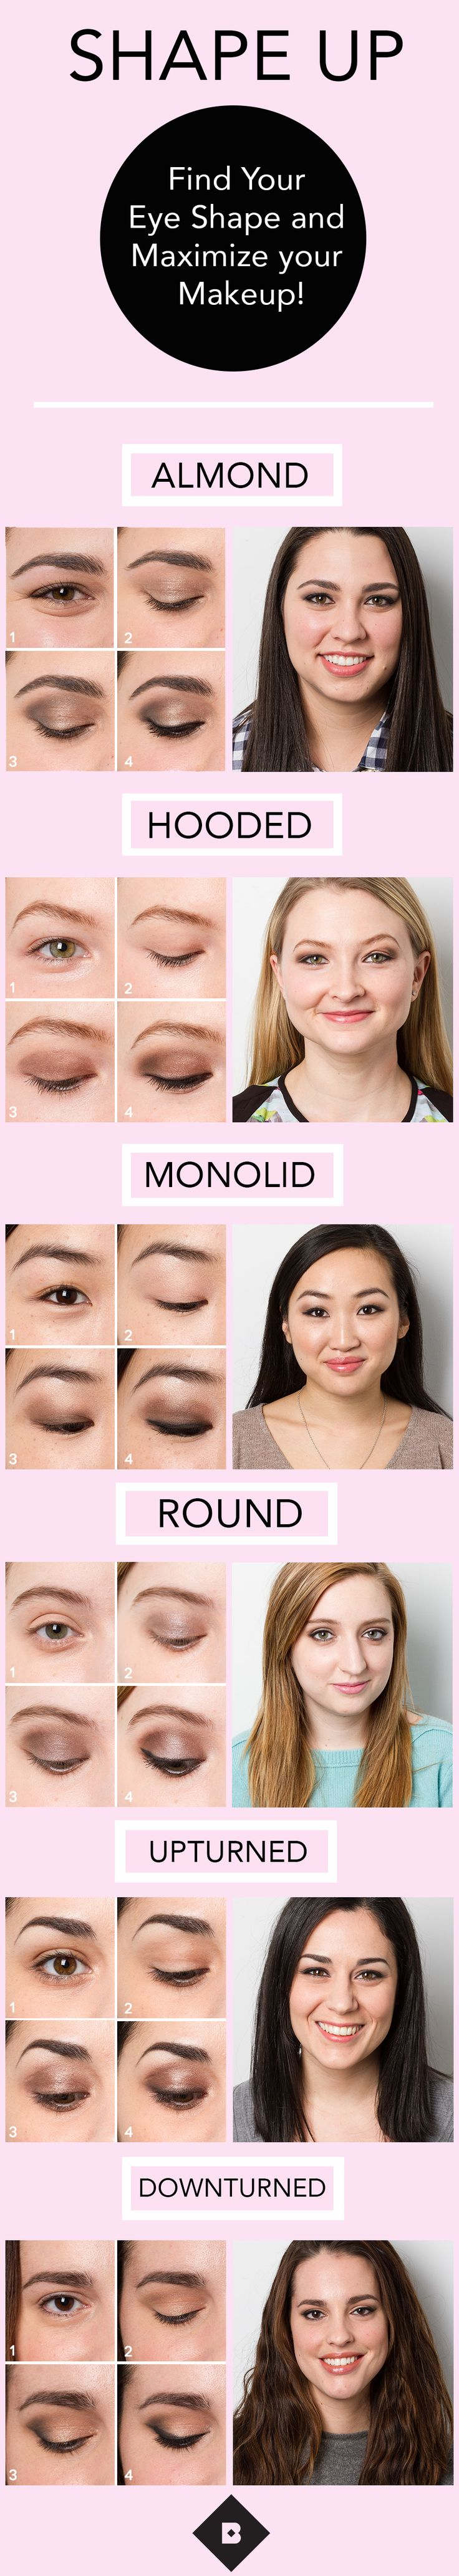 Read on to see Birchboxer examples of six eye shapes (including hooded eyes, almond eyes, monolids, and more), plus key techniques and application tips for each using the Smashbox Full Exposure Eyeshadow Palette.